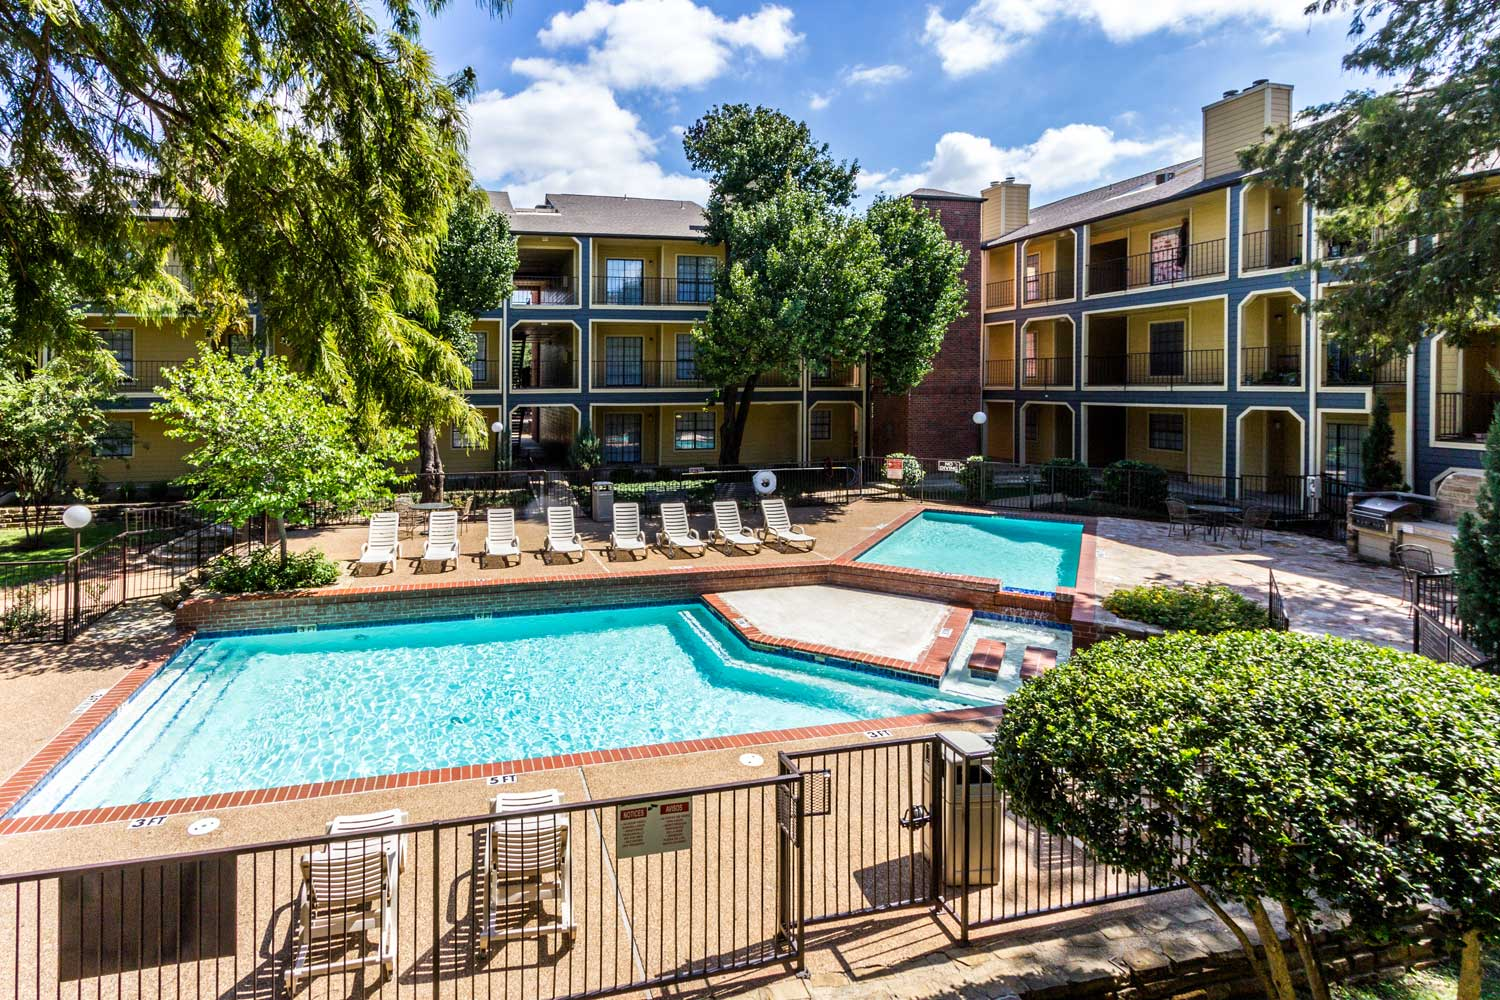 Resort-Style Swimming Pool with Sun Deckat Forest Hills Apartments in Dallas, TX